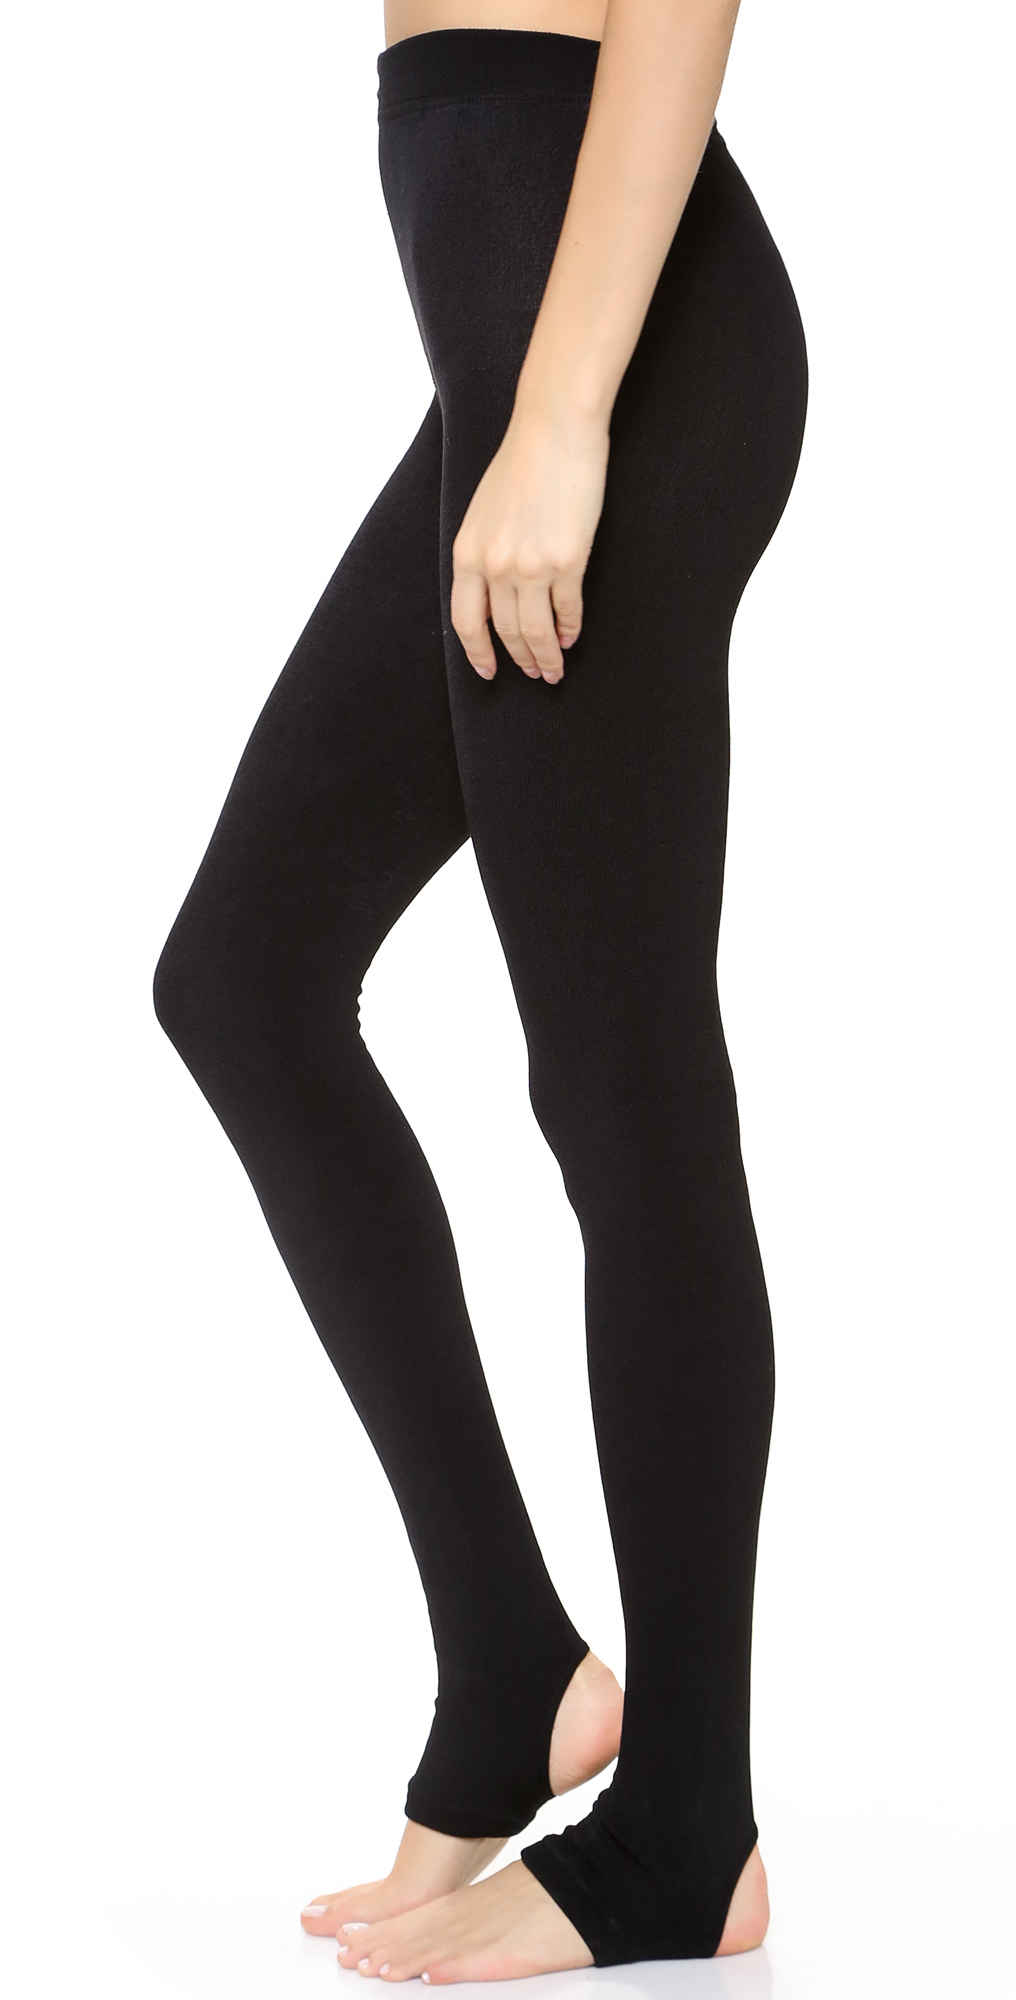 Fleece Lined Tights with Stirrup Plush